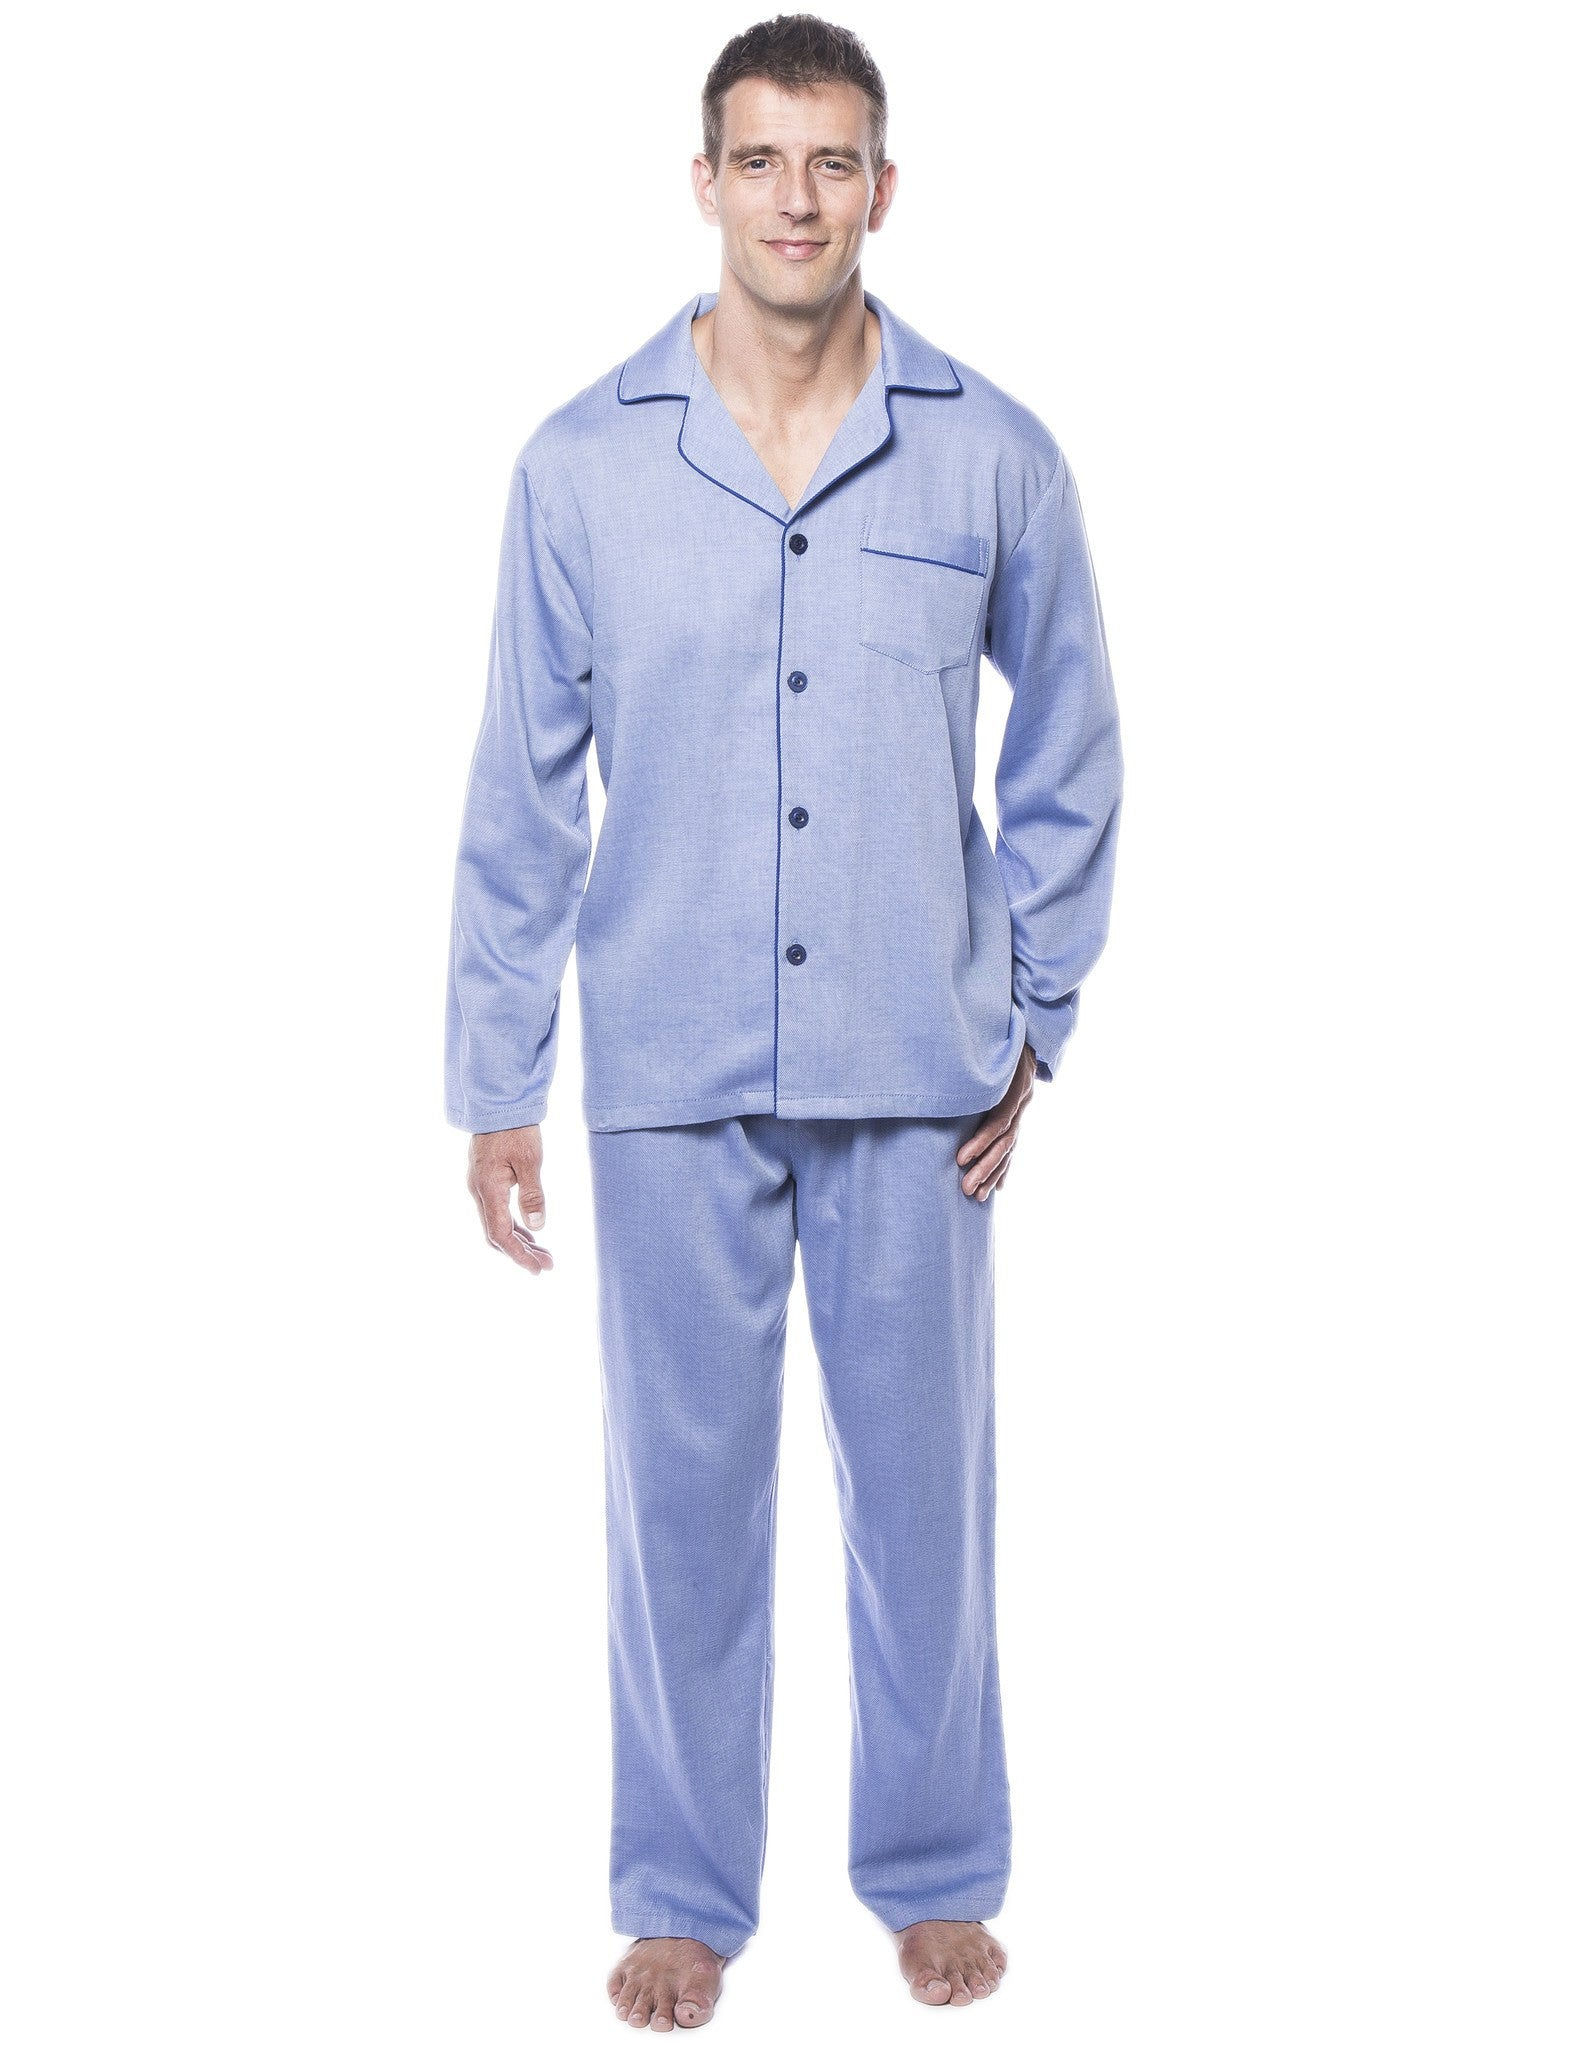 Men's 100% Woven Cotton Pajama Sleepwear Set